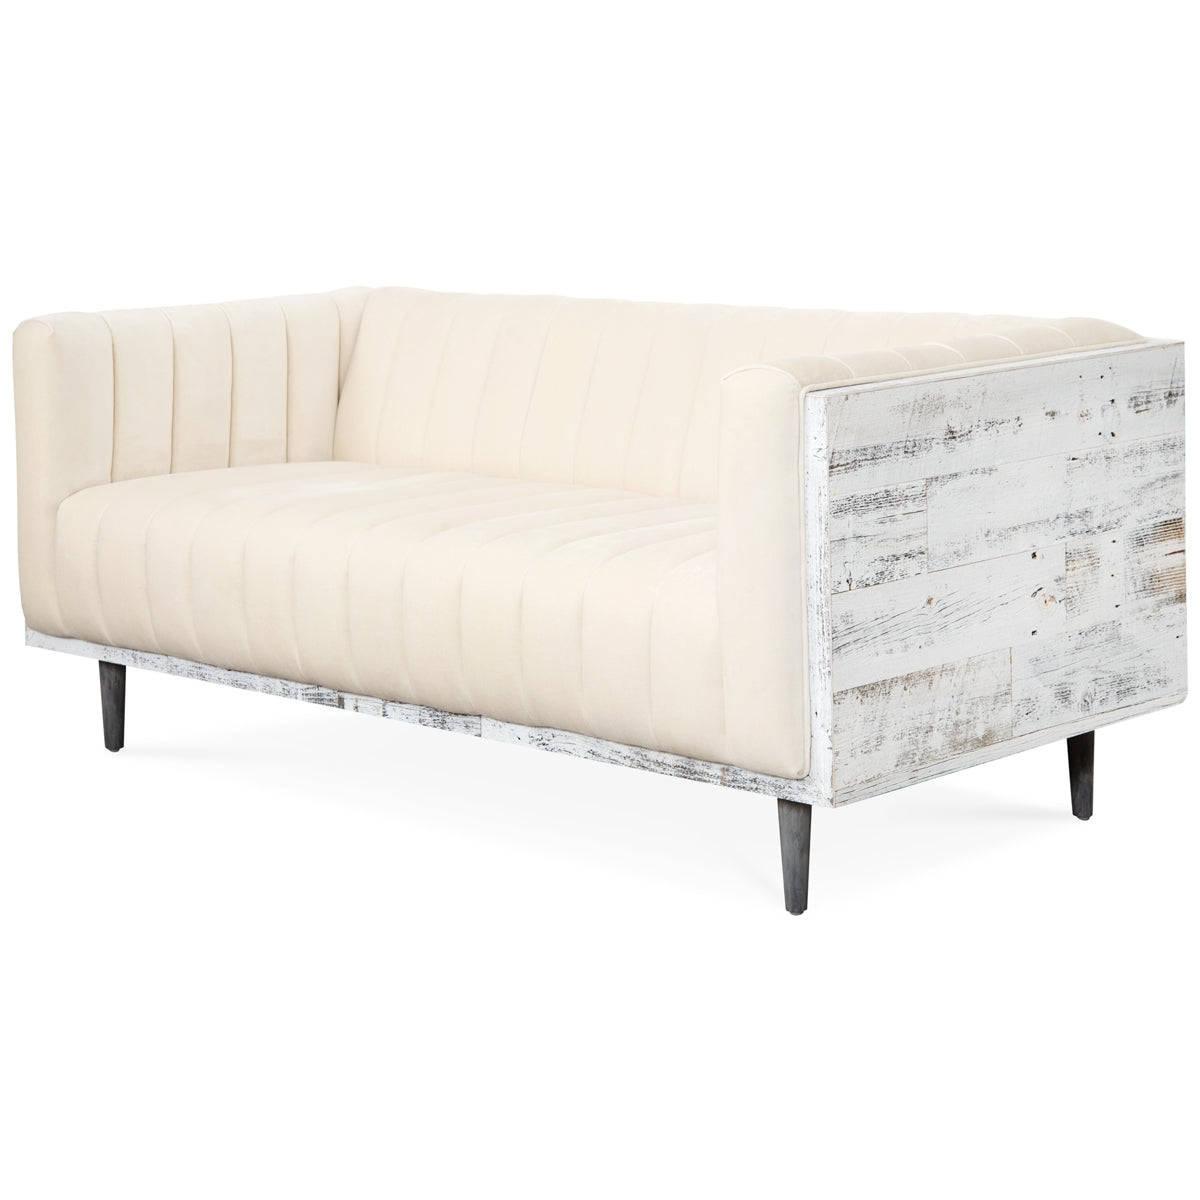 Cody Loveseat with Channel Tufting